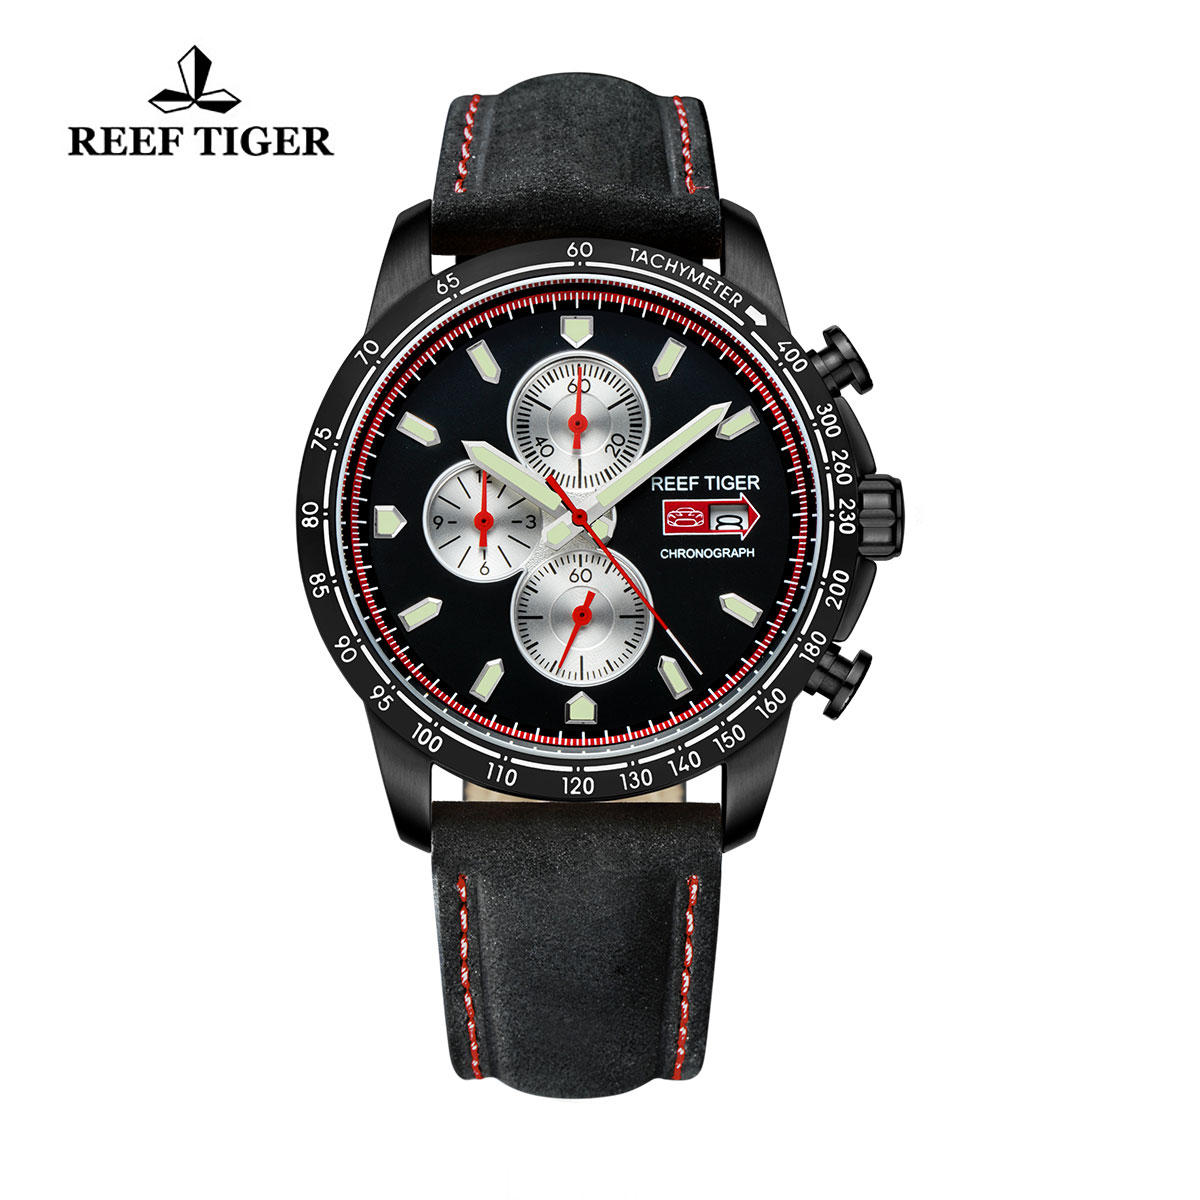 Reef Tiger Racing Casual Watch Black PVD Black Dial Leather Strap Chronograph Watch RGA3029-BBB